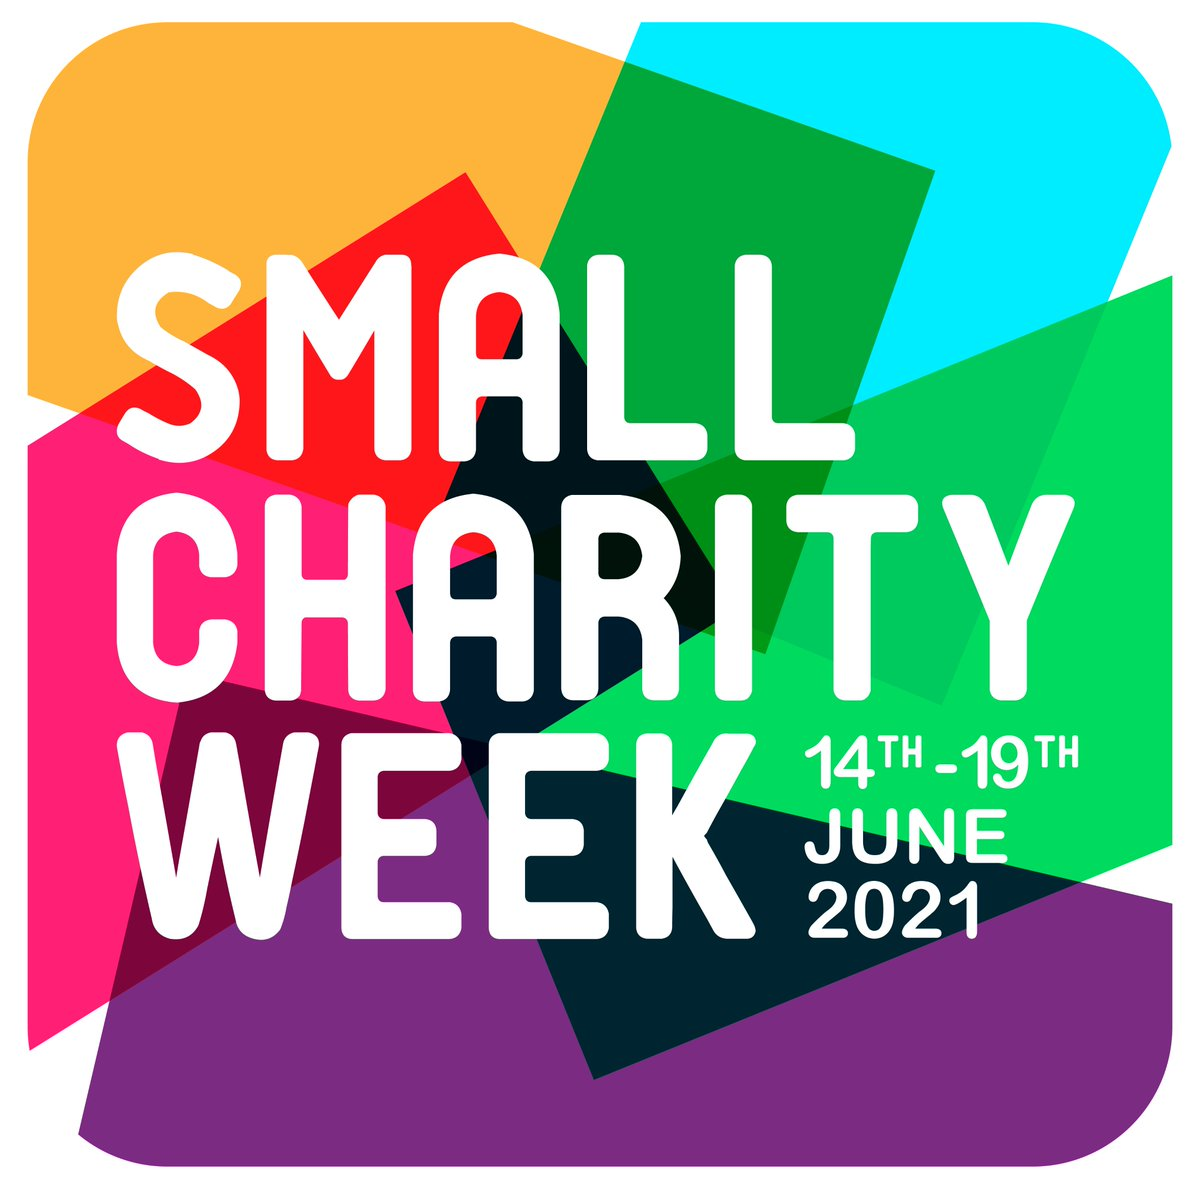 test Twitter Media - In #SmallCharityWeek we've published the results of our grants survey of groups in #Dorset to see how well we've done and what we can do to improve our service. You can see the results here: https://t.co/lqRI0BflLc https://t.co/PWvONrG9DS